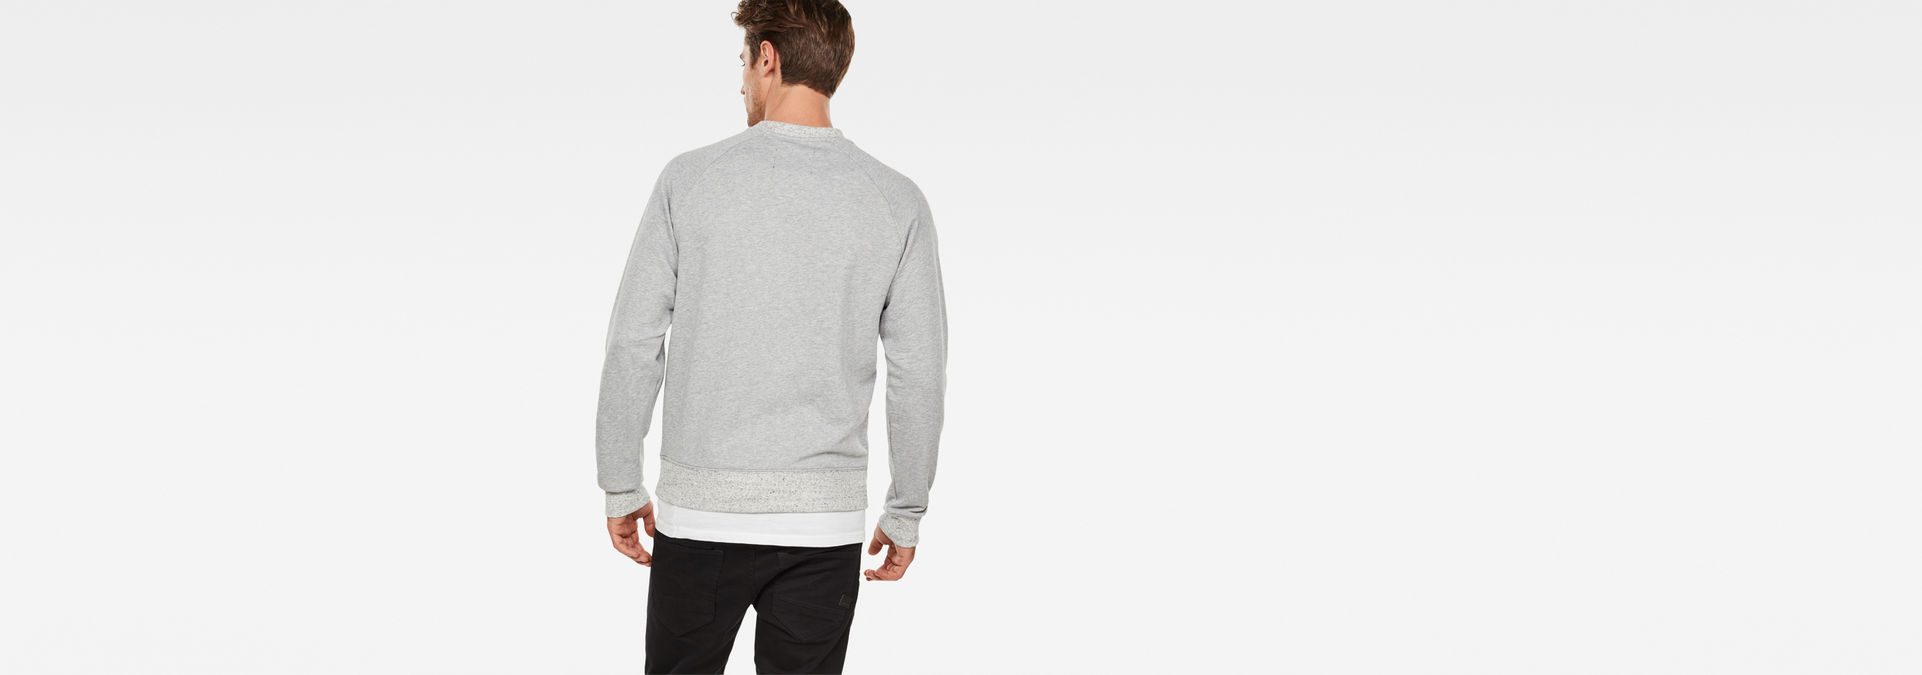 G Star RAW Revir stor raglan sweater grey heather